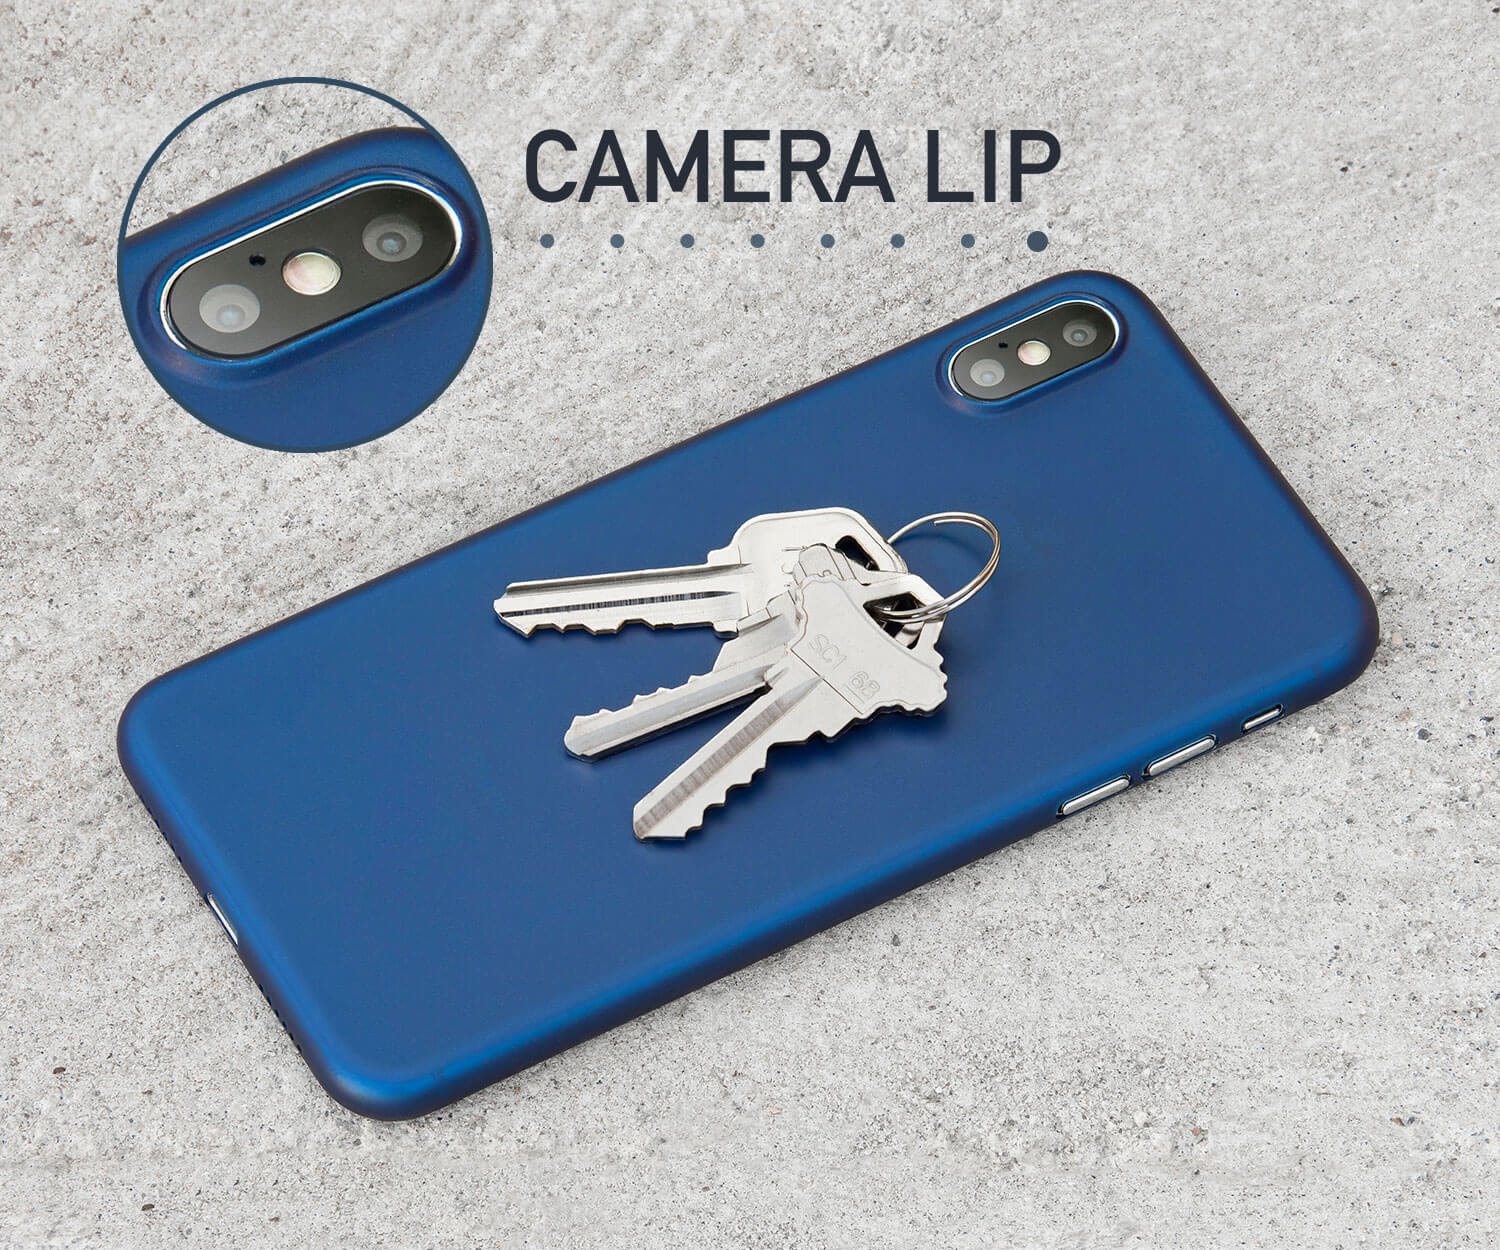 A thin iPhone X case with a lip for camera protection